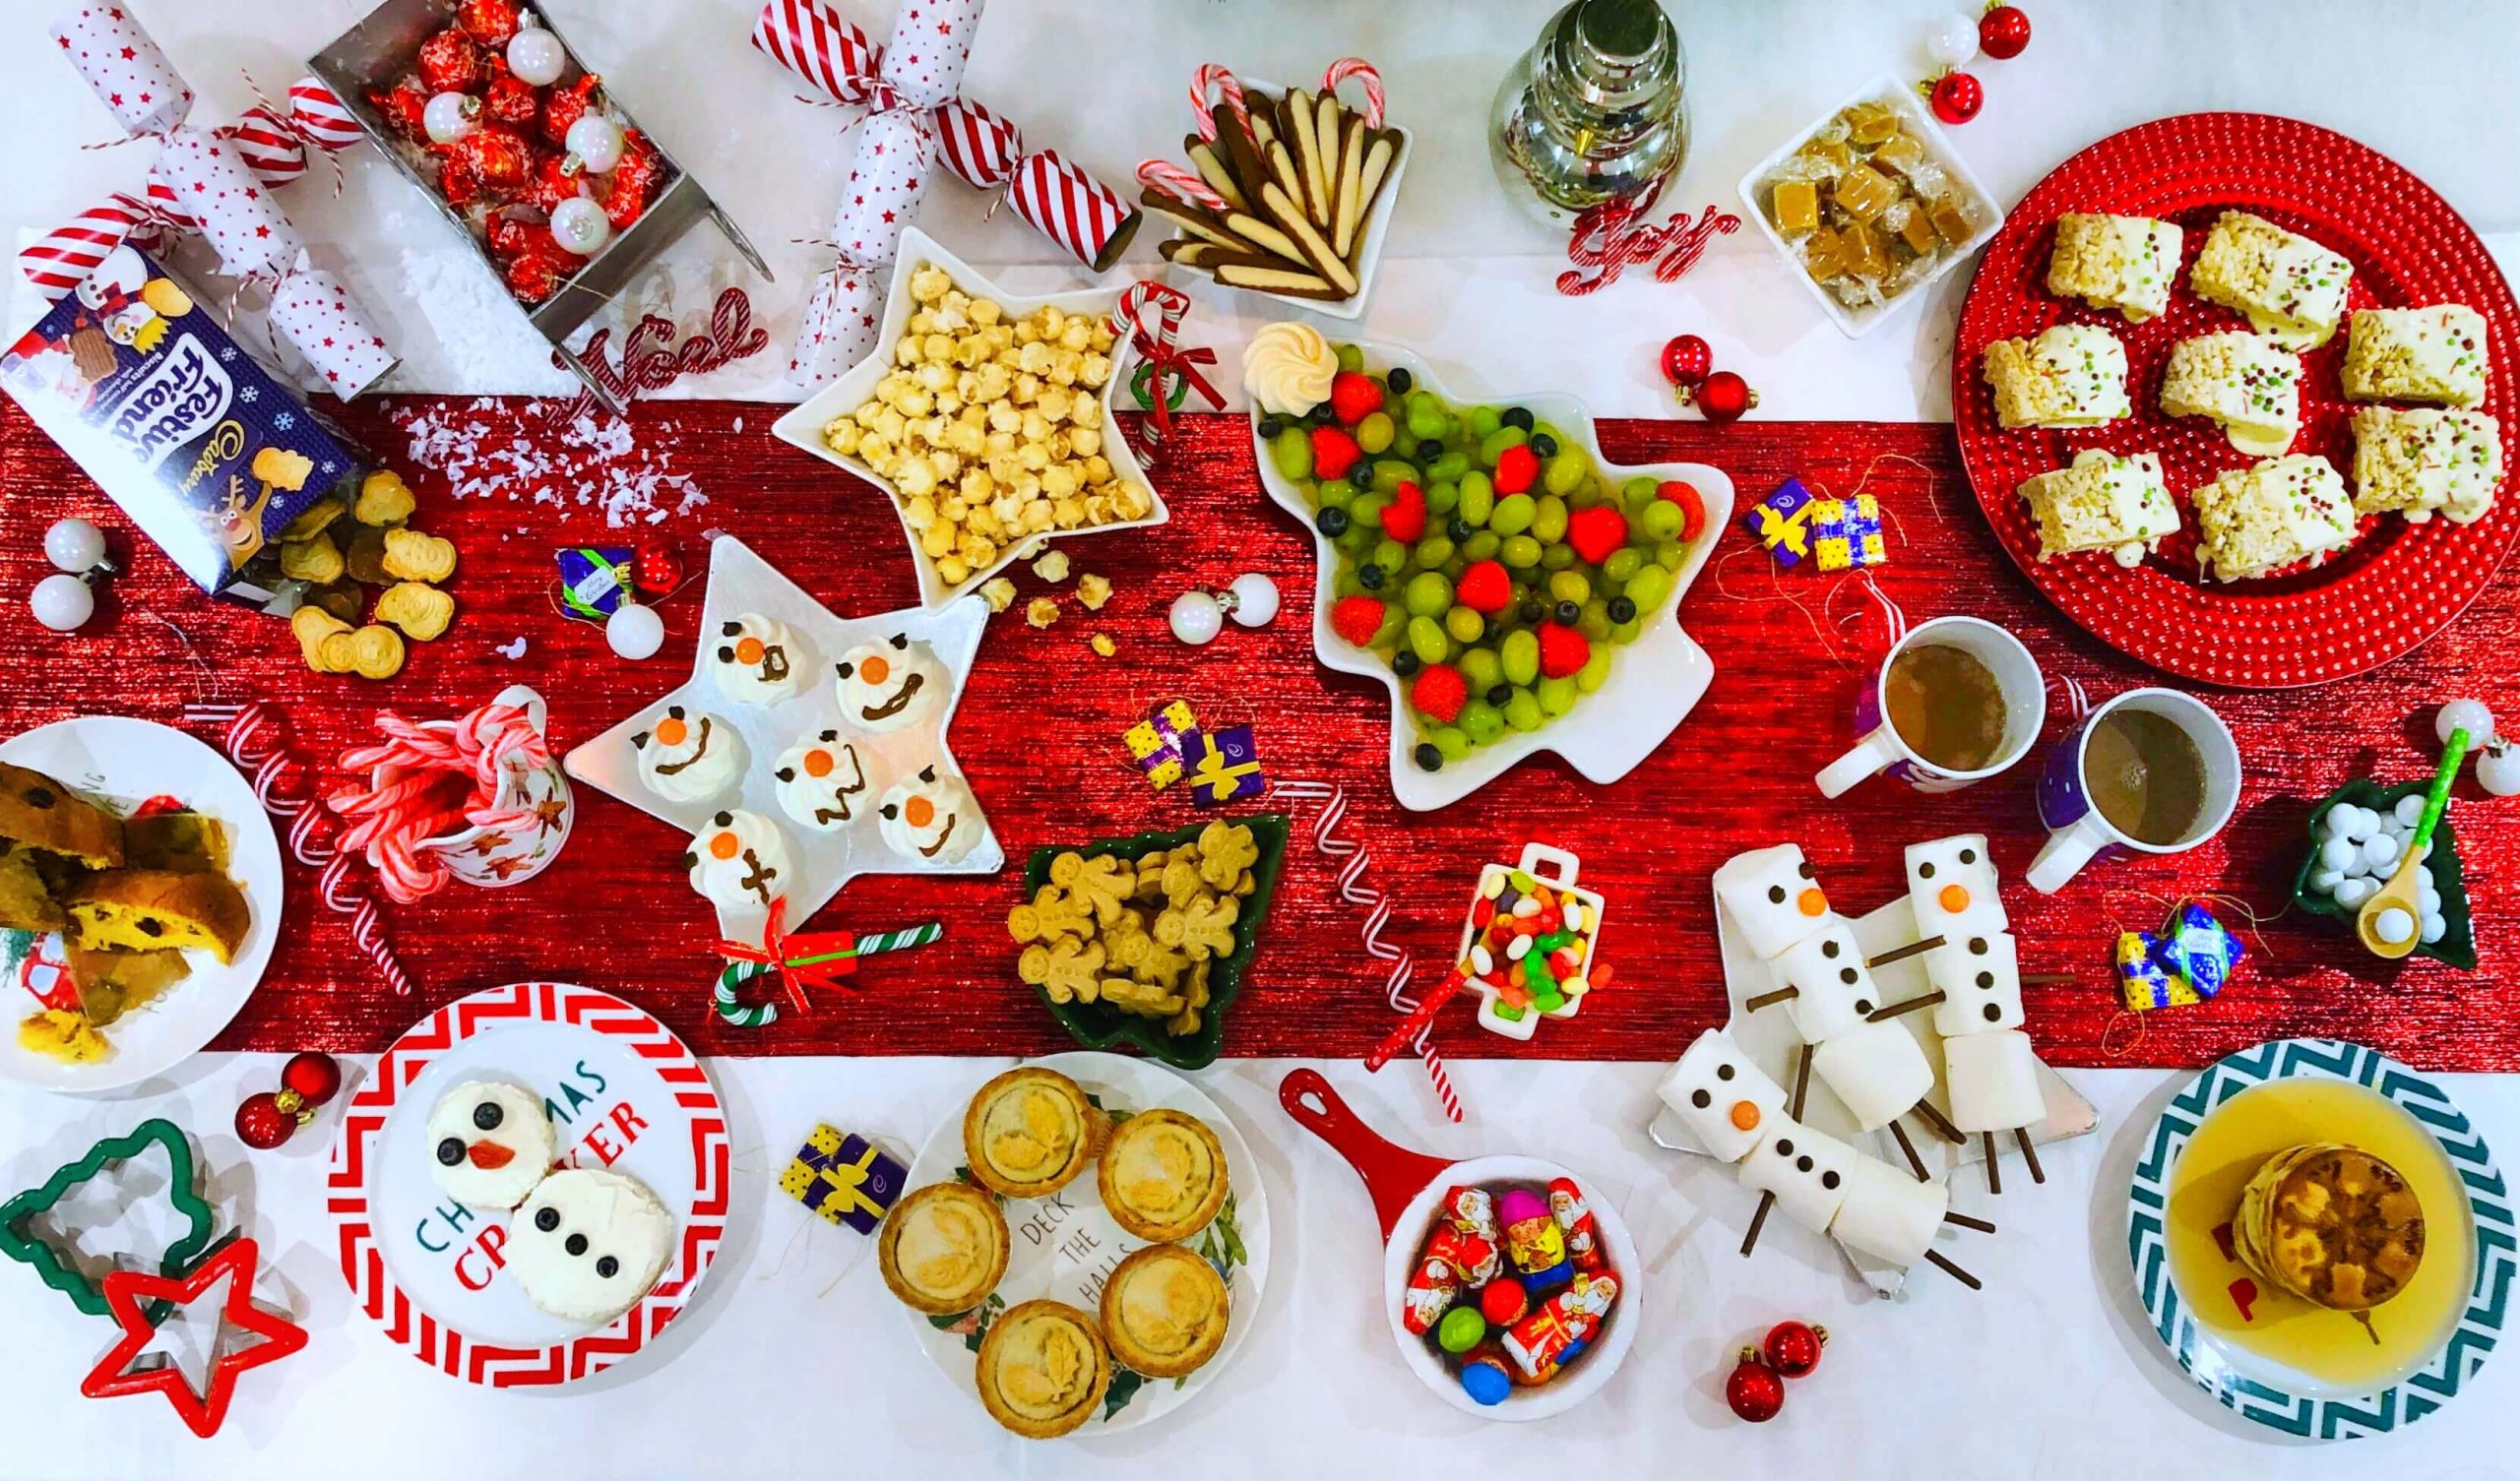 Overhead View of North Pole Breakfast Table